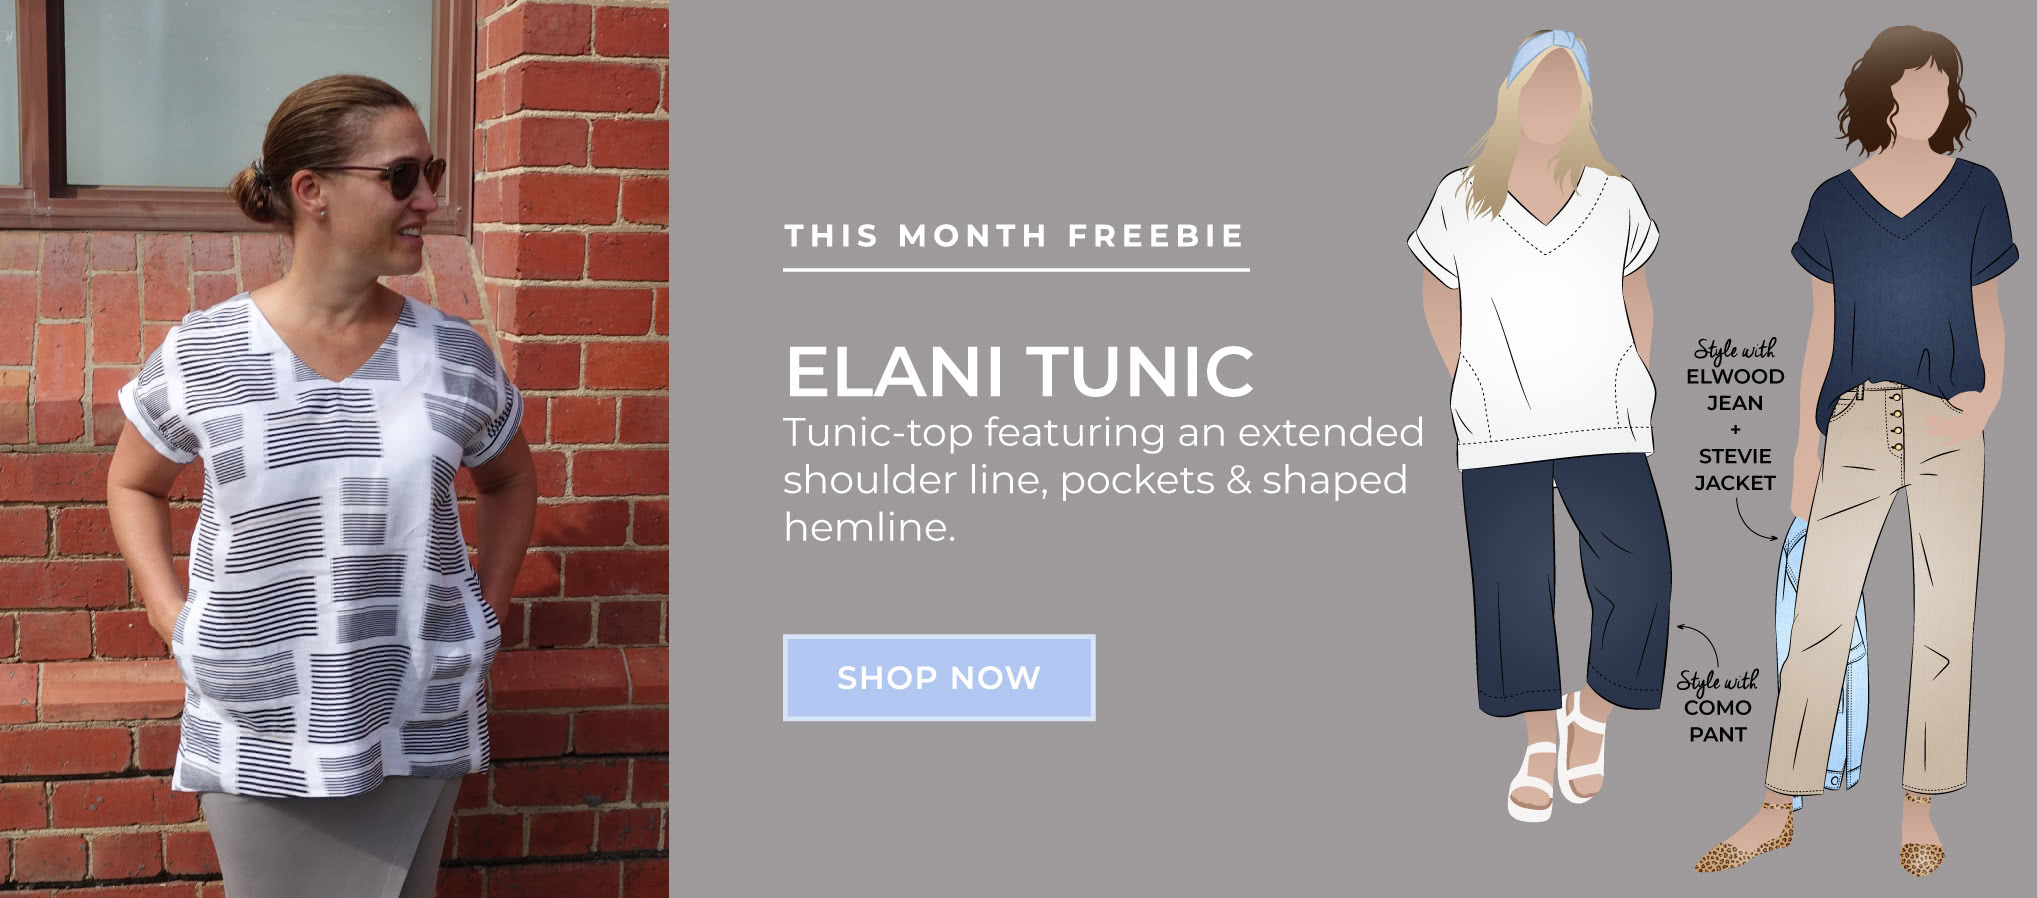 Elani Tunic March 2020 freebie